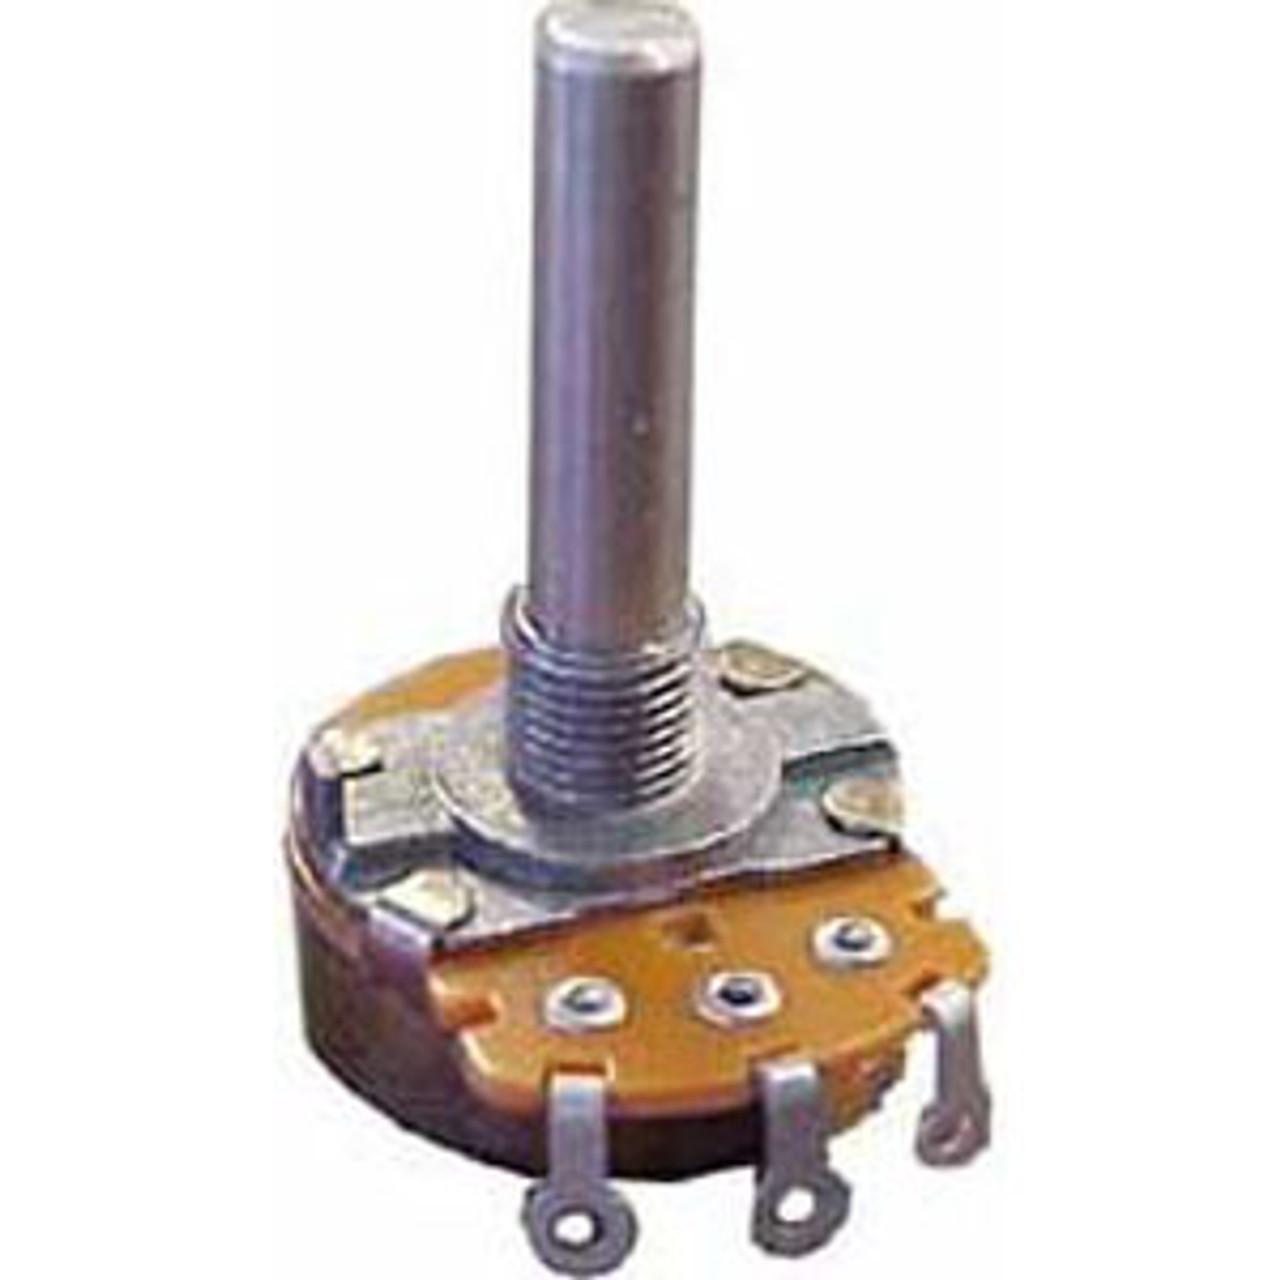 10K Standard Potentiometer (24 mm) Linear taper without switch Solder lug terminals  Max voltage: 500 VAC Audio 250 VAC Power rating: Linear 500mA, .5W Audio 250 mA, .25W Switch Rating 1.0A @ 125V AC/DC Bushing diameter 8 mm Shaft 30mm w/flat 12mm, 6mm OD